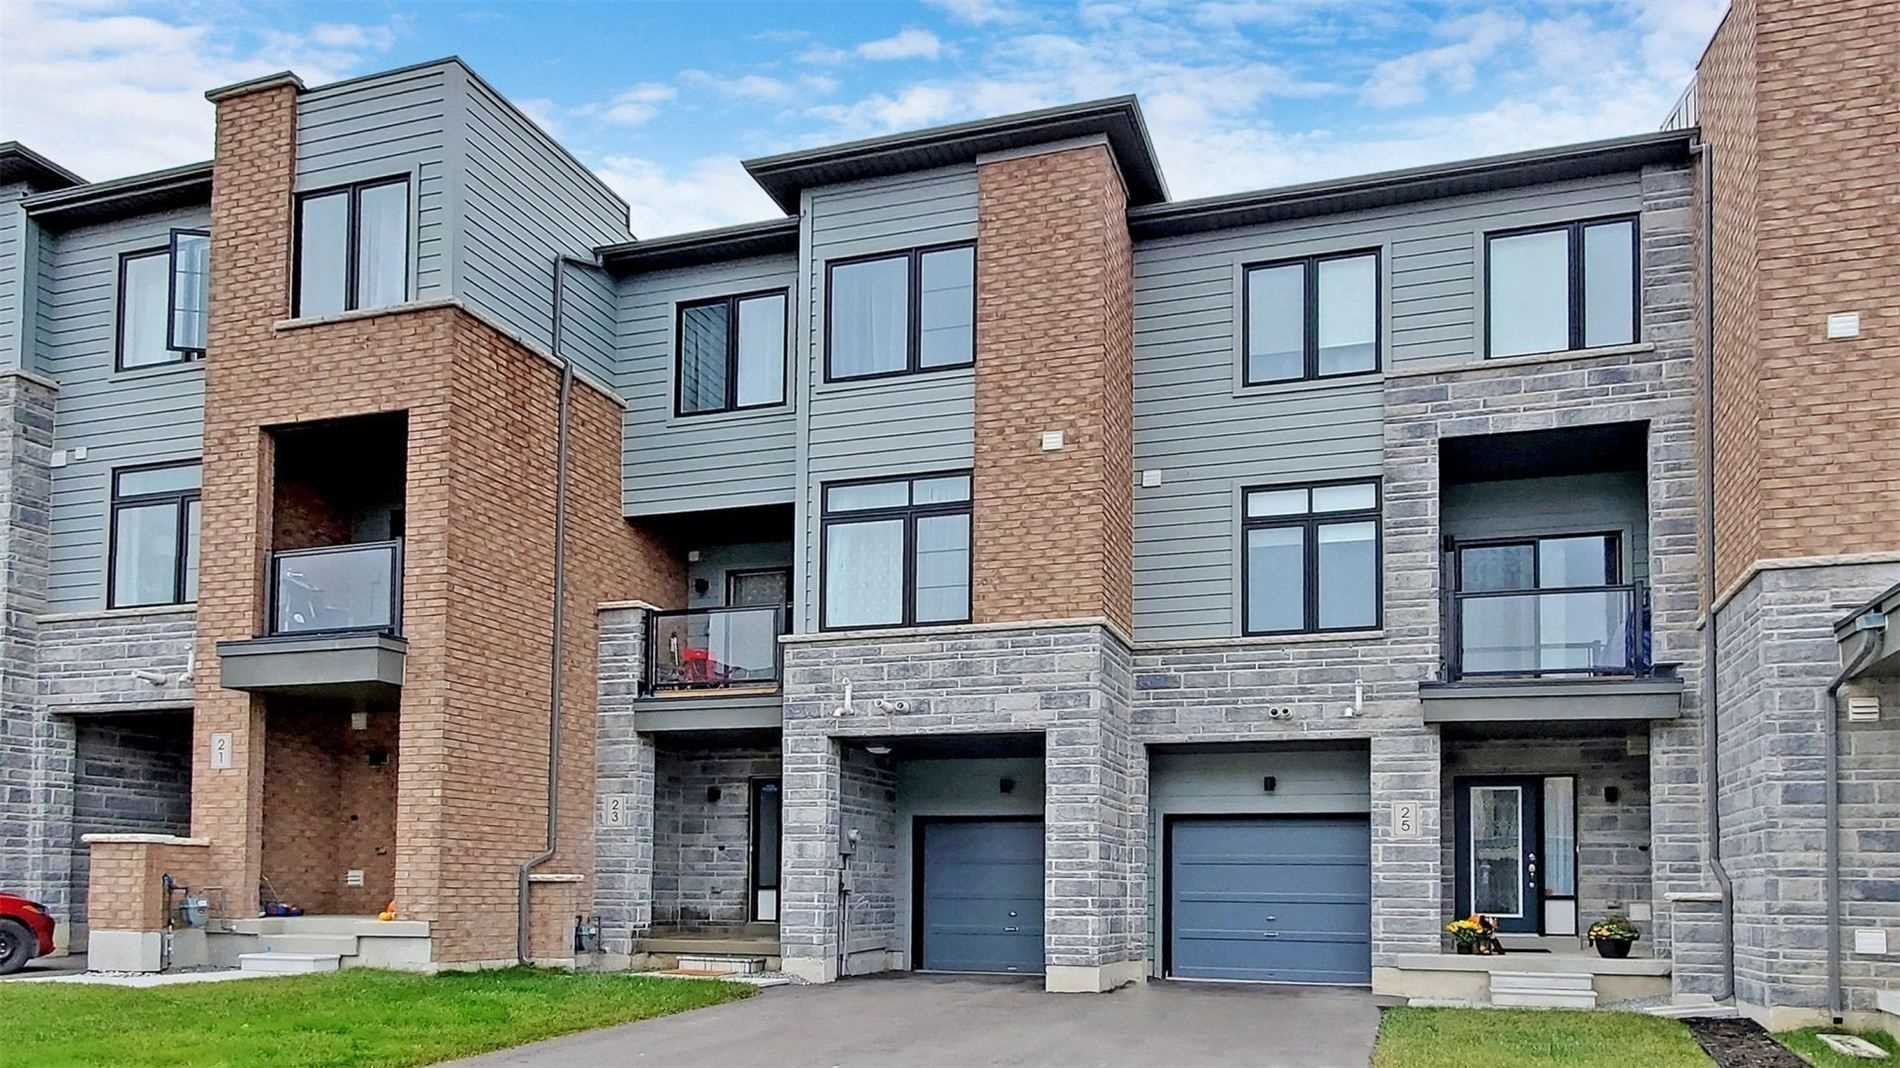 Main Photo: 23 Vantage Loop Drive in Newmarket: Woodland Hill House (3-Storey) for sale : MLS®# N5057667